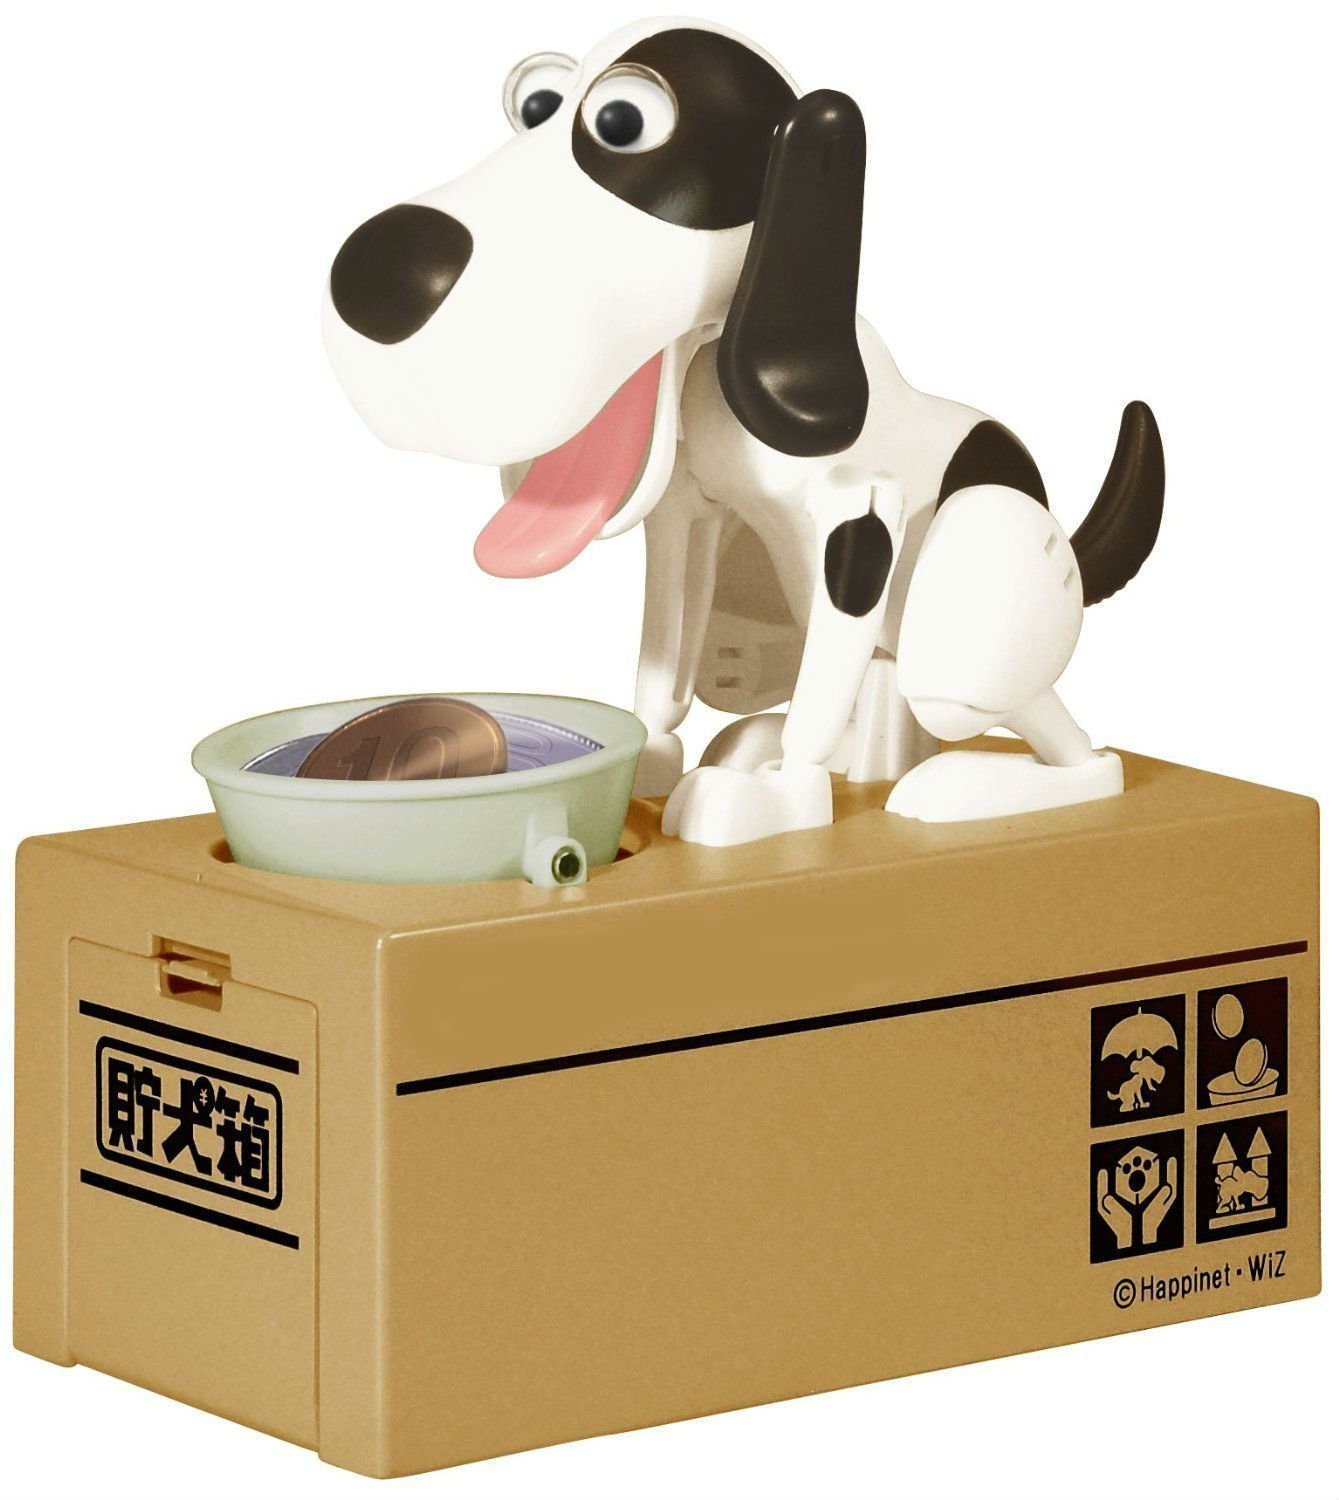 BIGOCT Cute Dog Money Box Piggy Bank Amazing Innovation DOGBANK